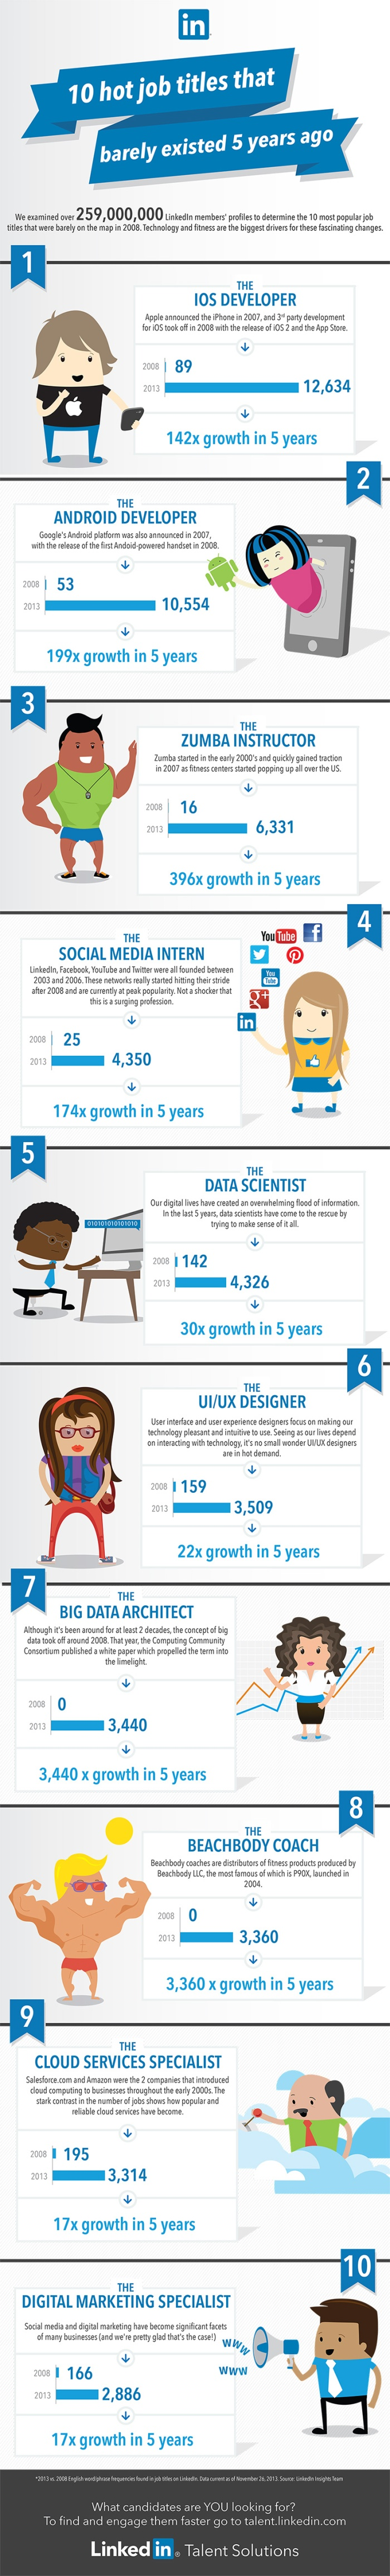 Top 10 Job Titles That Didn't Exist 5 Years Ago [INFOGRAPHIC]